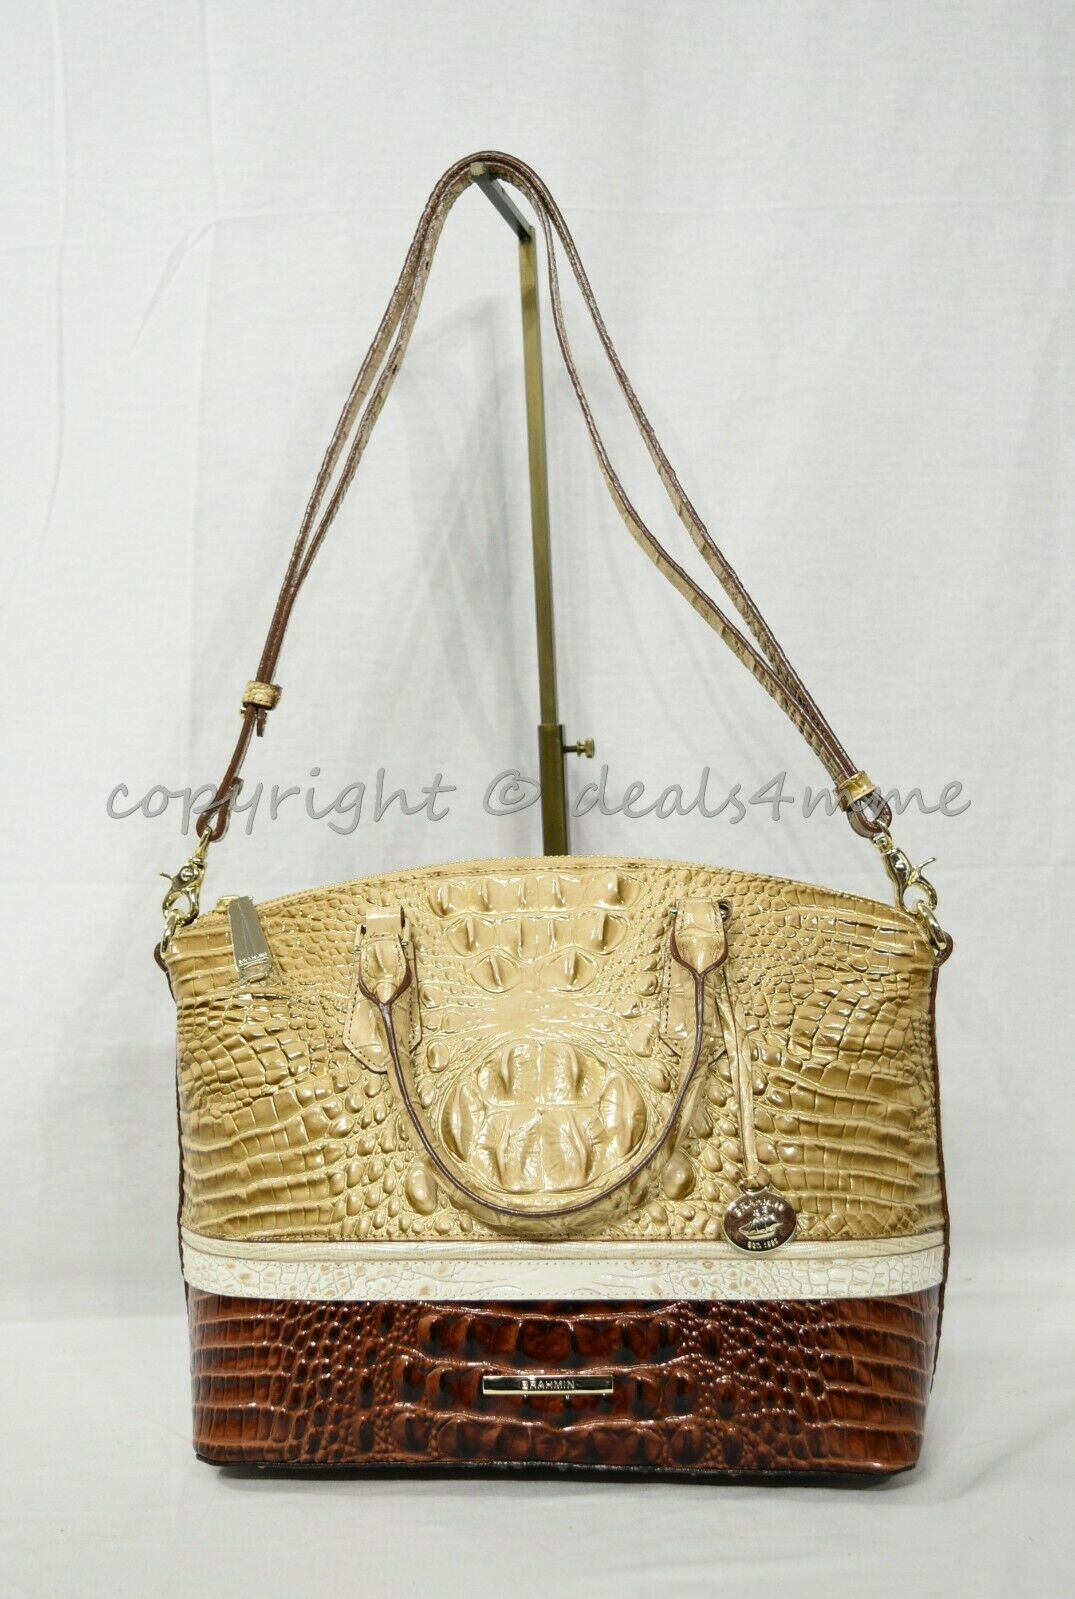 NWT Brahmin Duxbury Leather Satchel/Shoulder Bag in Honeycomb Leroy image 2